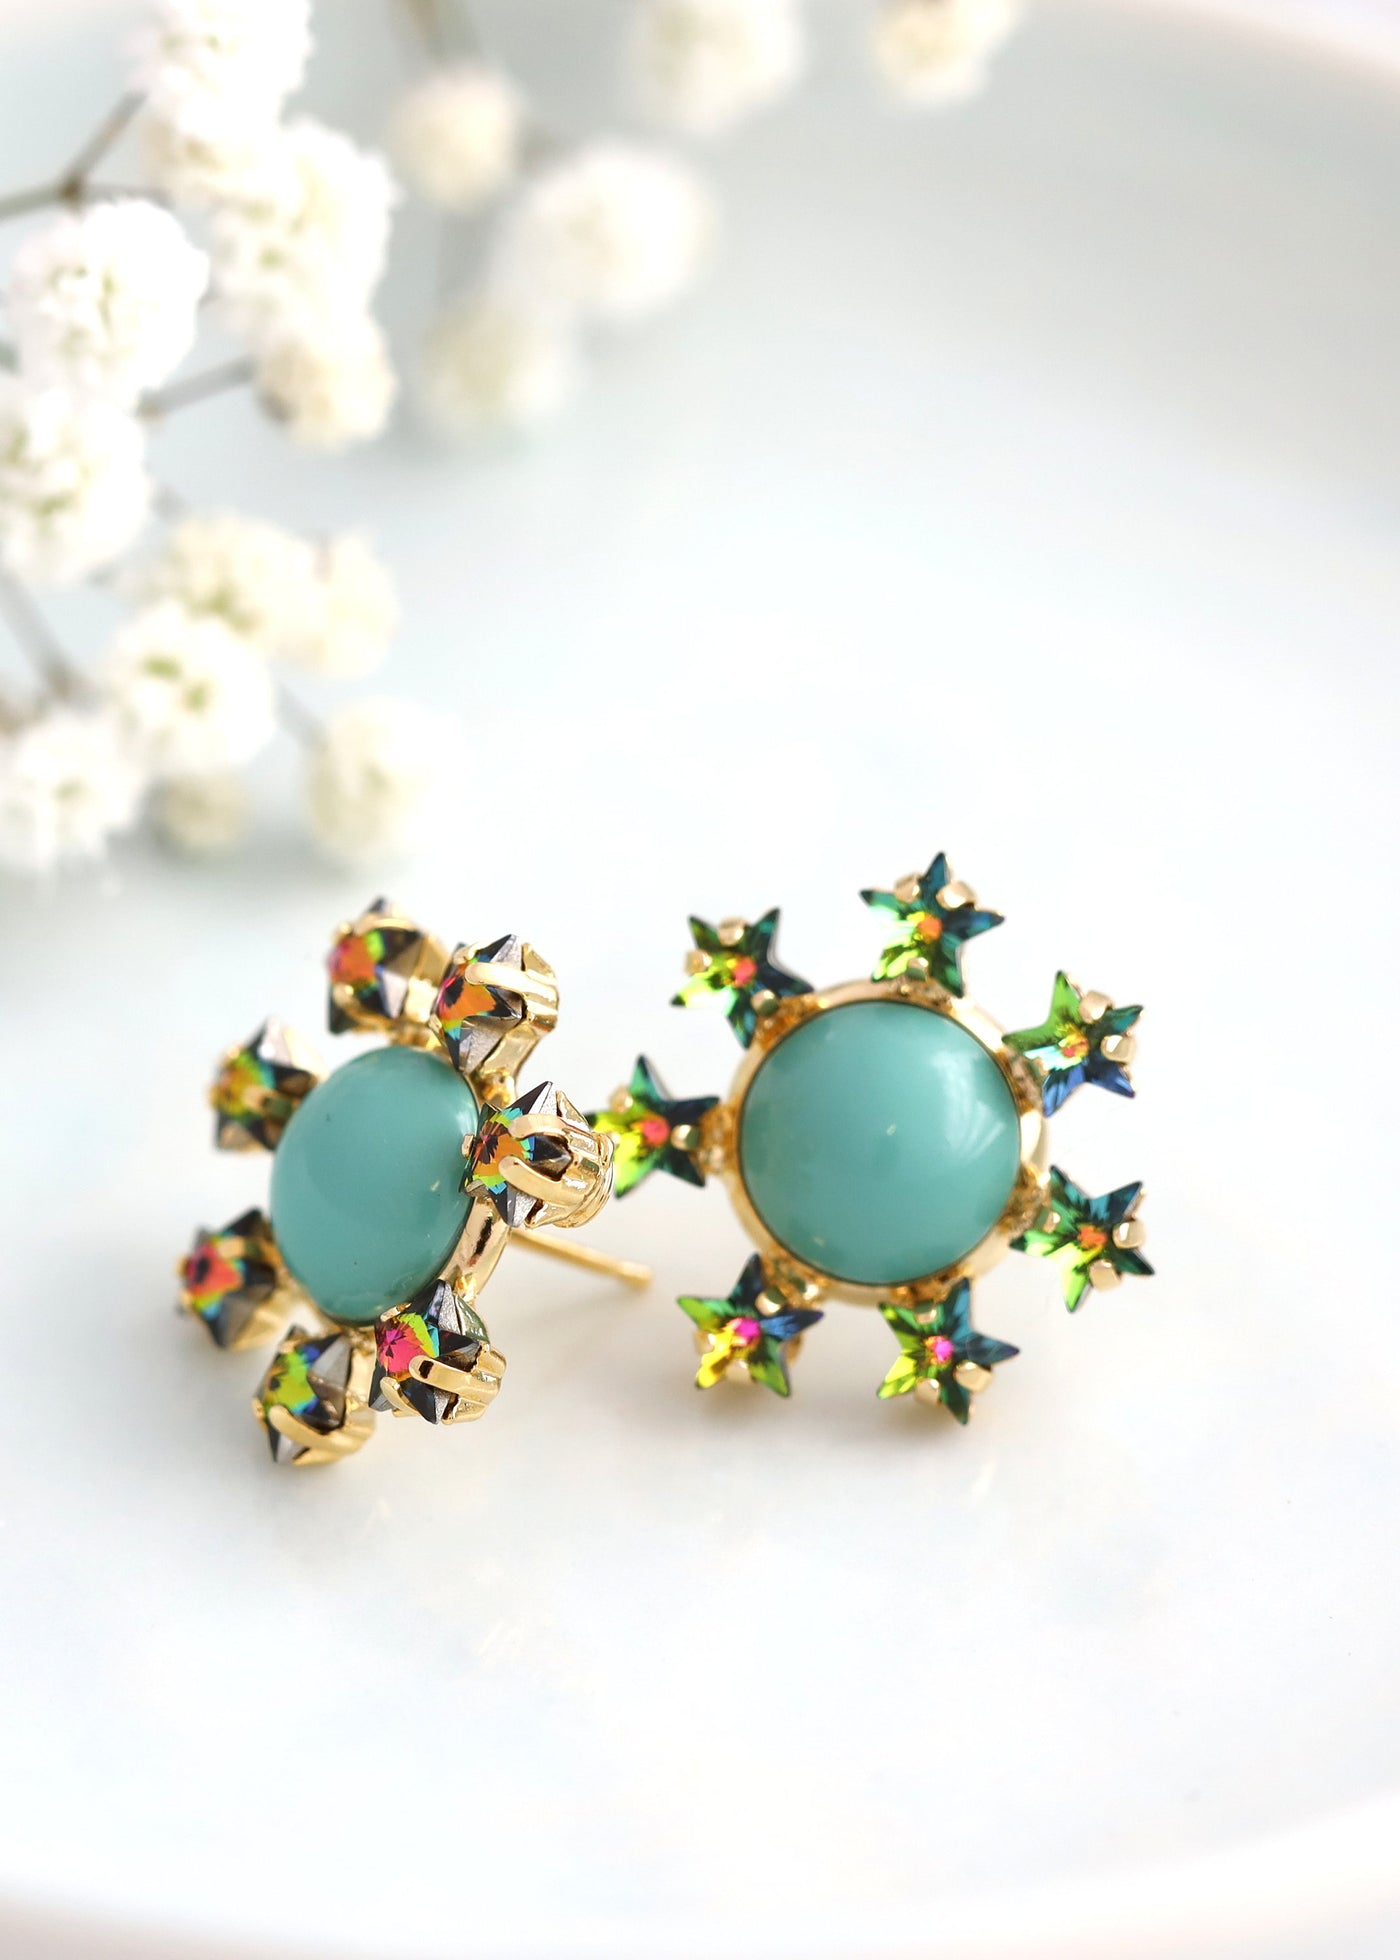 Star Earrings, Turquoise Stud Earrings, Turquoise Crystal  Earrings, Stars And Celestial Earrings, Bridesmaids Studs, Gold Star Earrings